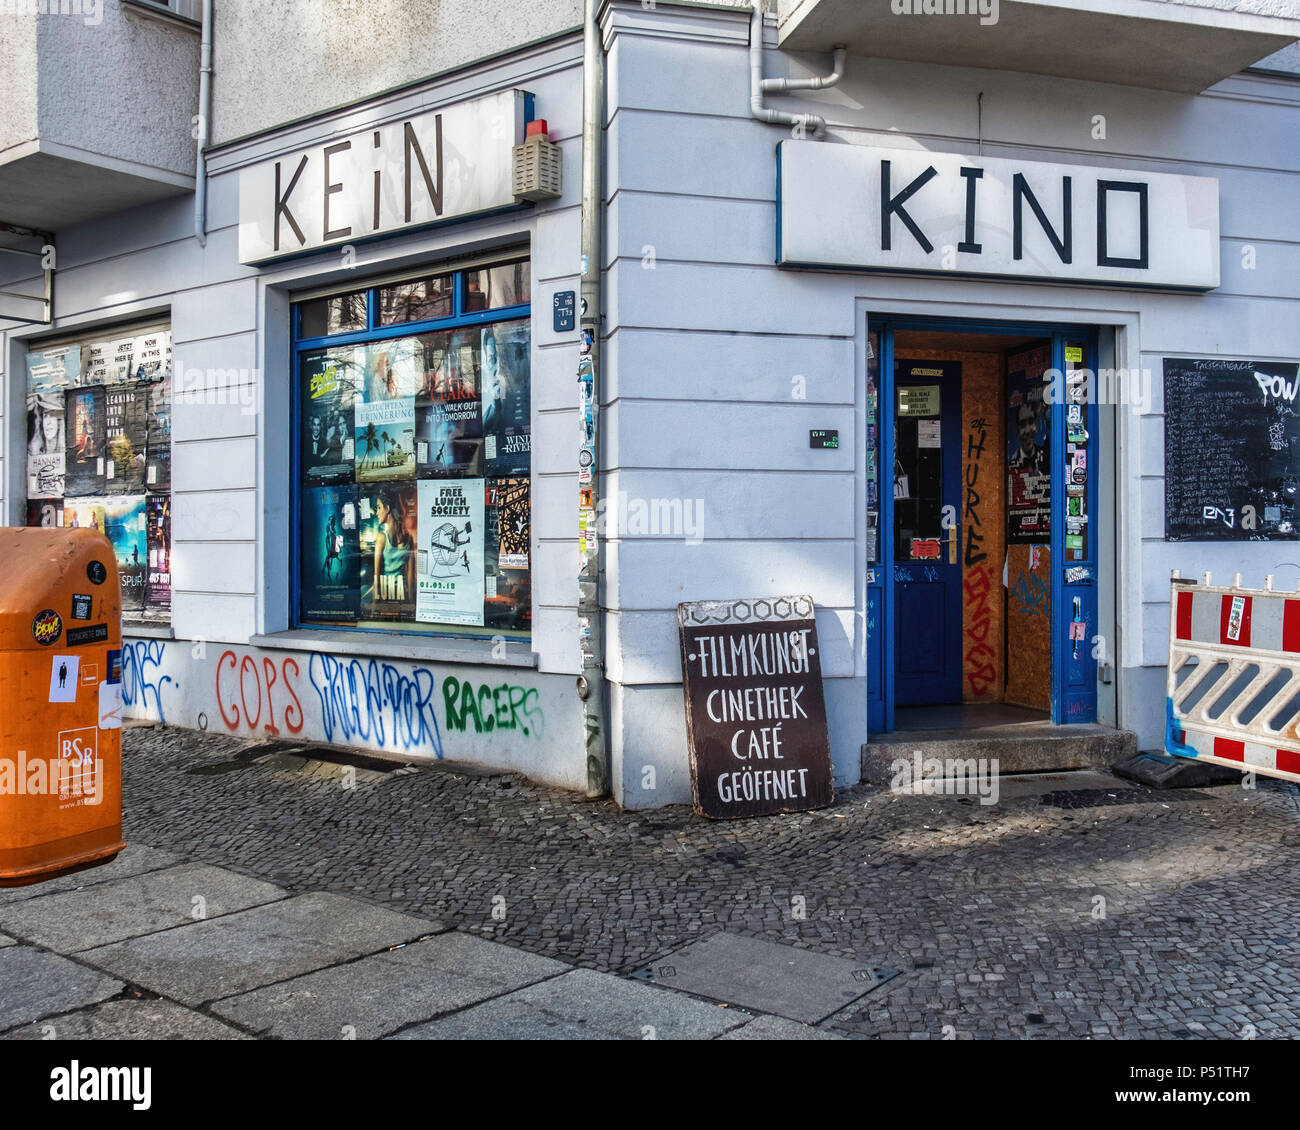 Berlin, Friedrichshain. B-ware Laden Kino, Corner cinema and video libary exterior  Sign outside says, Das ist kein Kino – this is not a cinema. The i - Stock Image